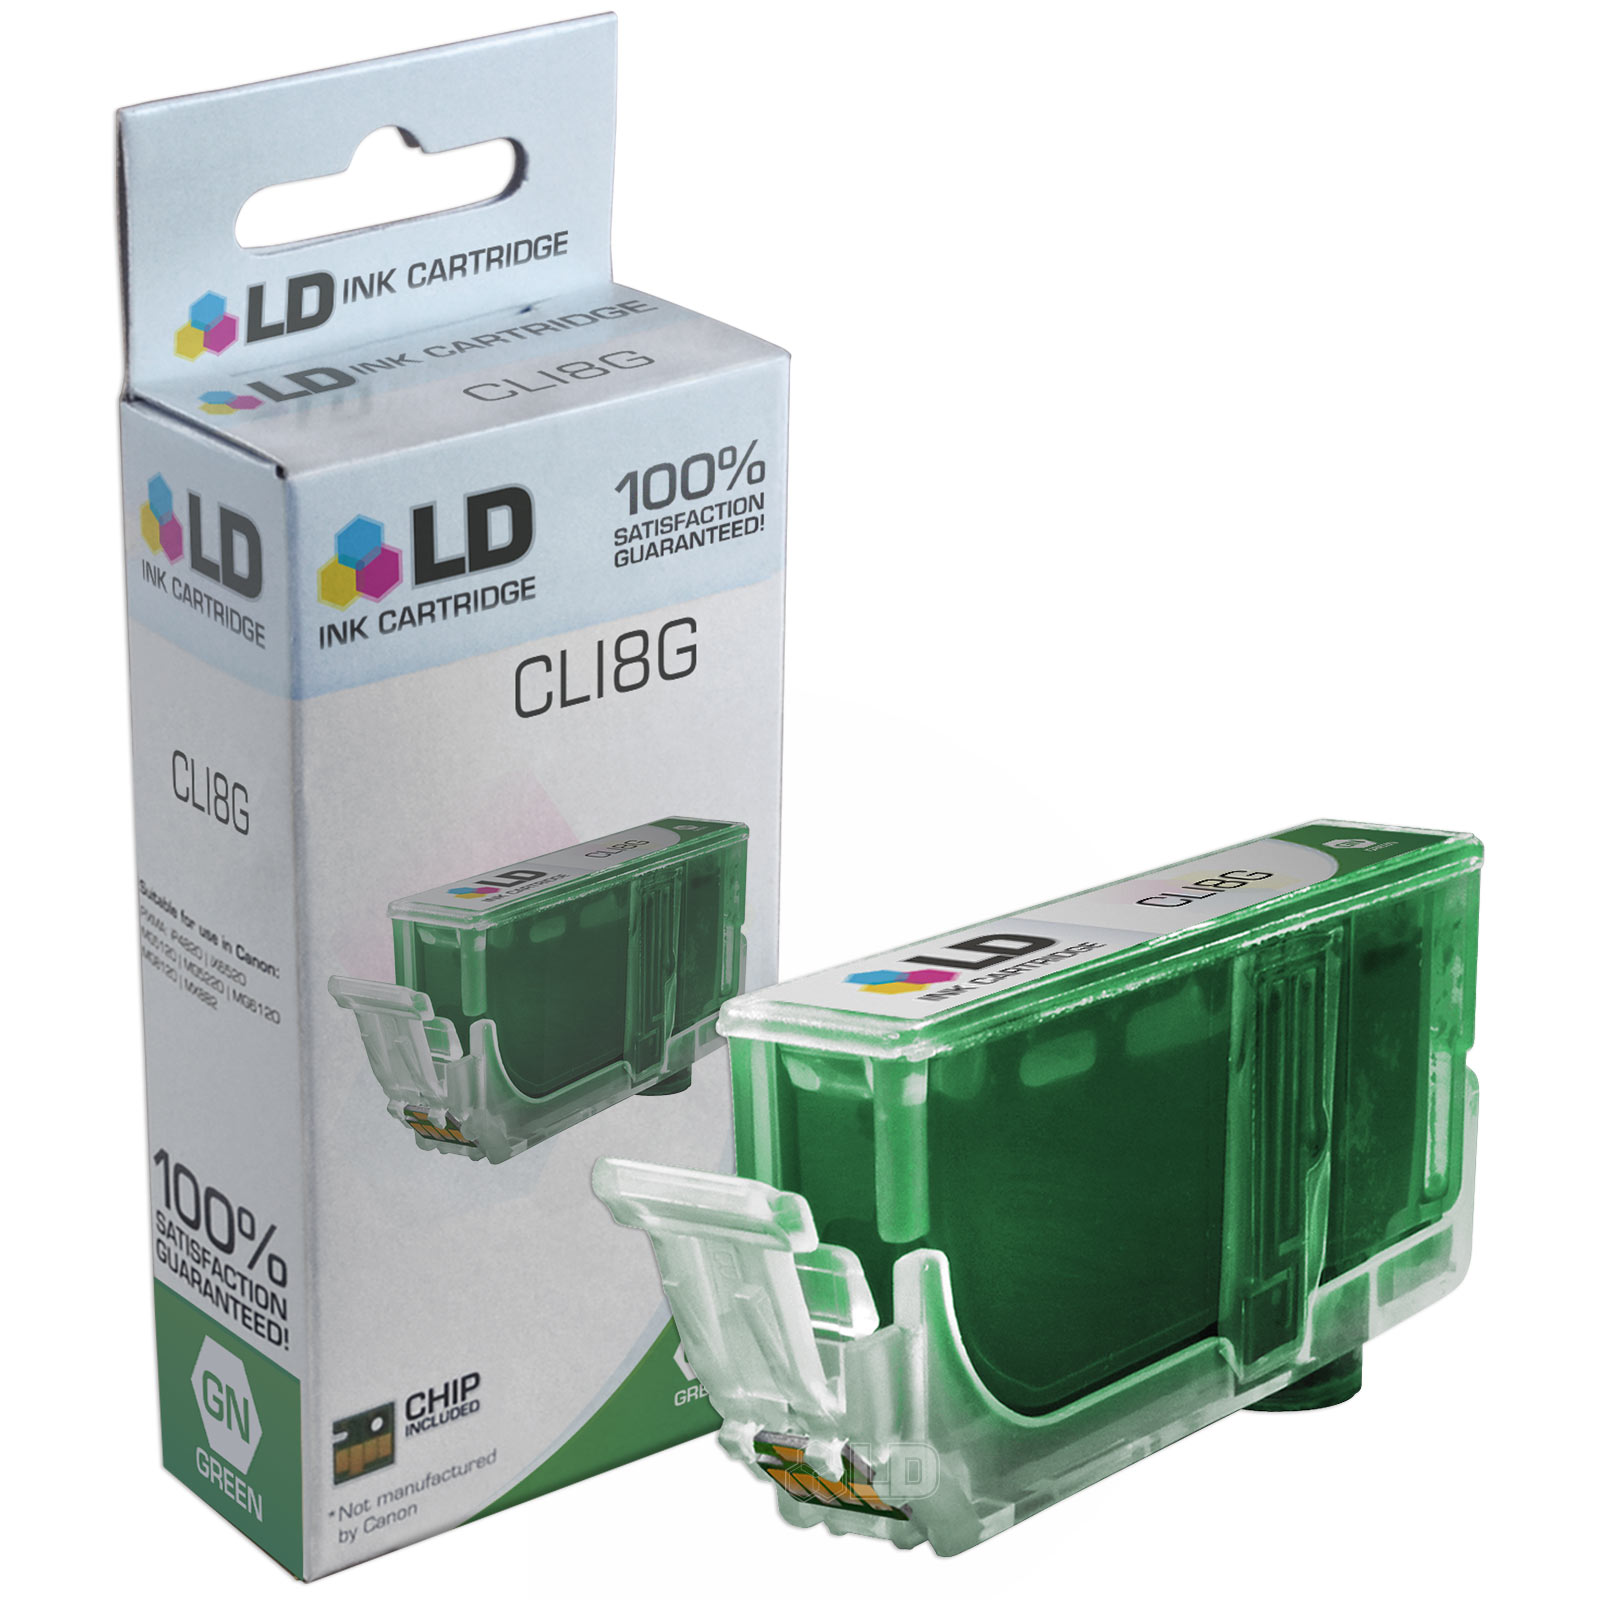 LD Compatible Replacement for Canon CLI8G Ink Cartridge Includes: 1 Green 0627B002